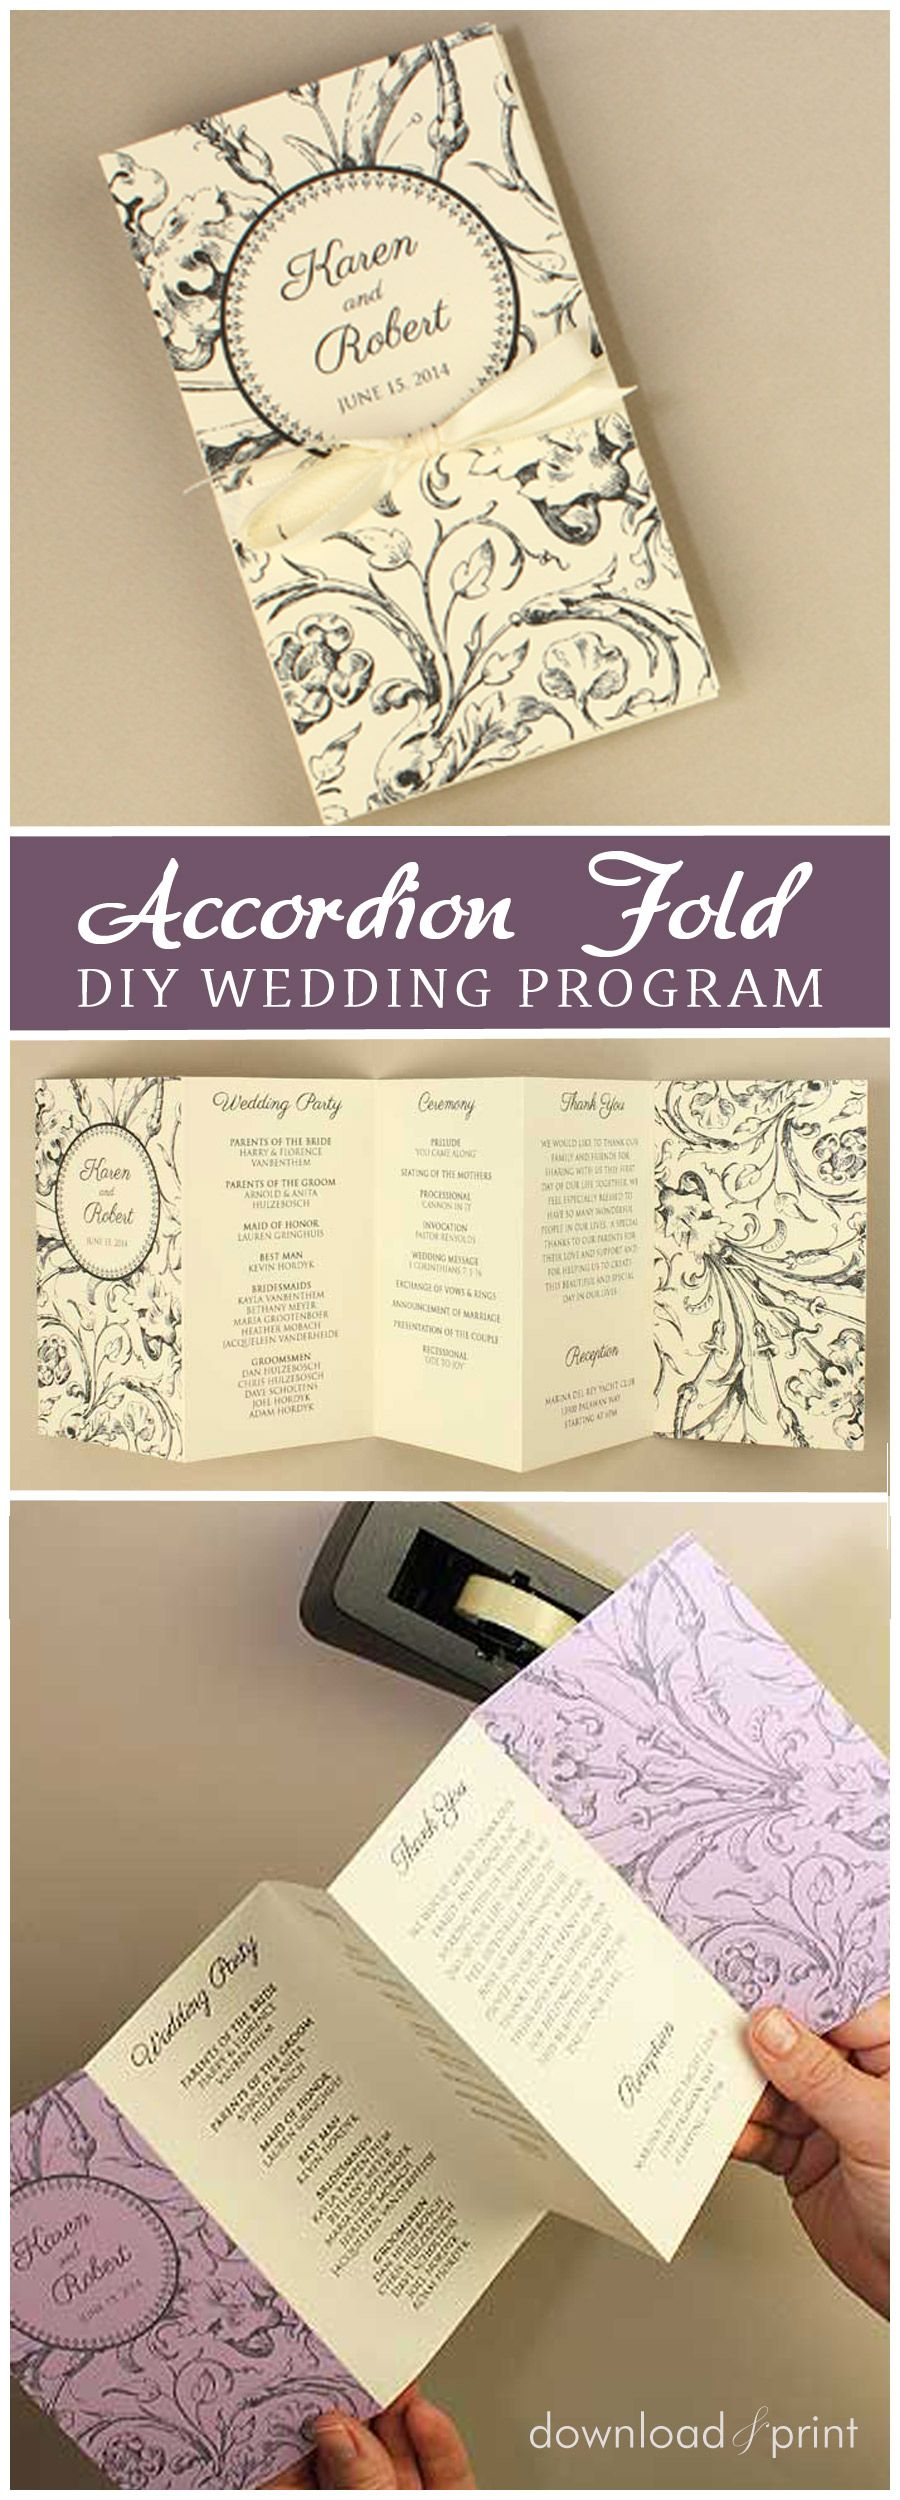 DIY Accordion Fold Wedding Ceremony Program It has tons of style